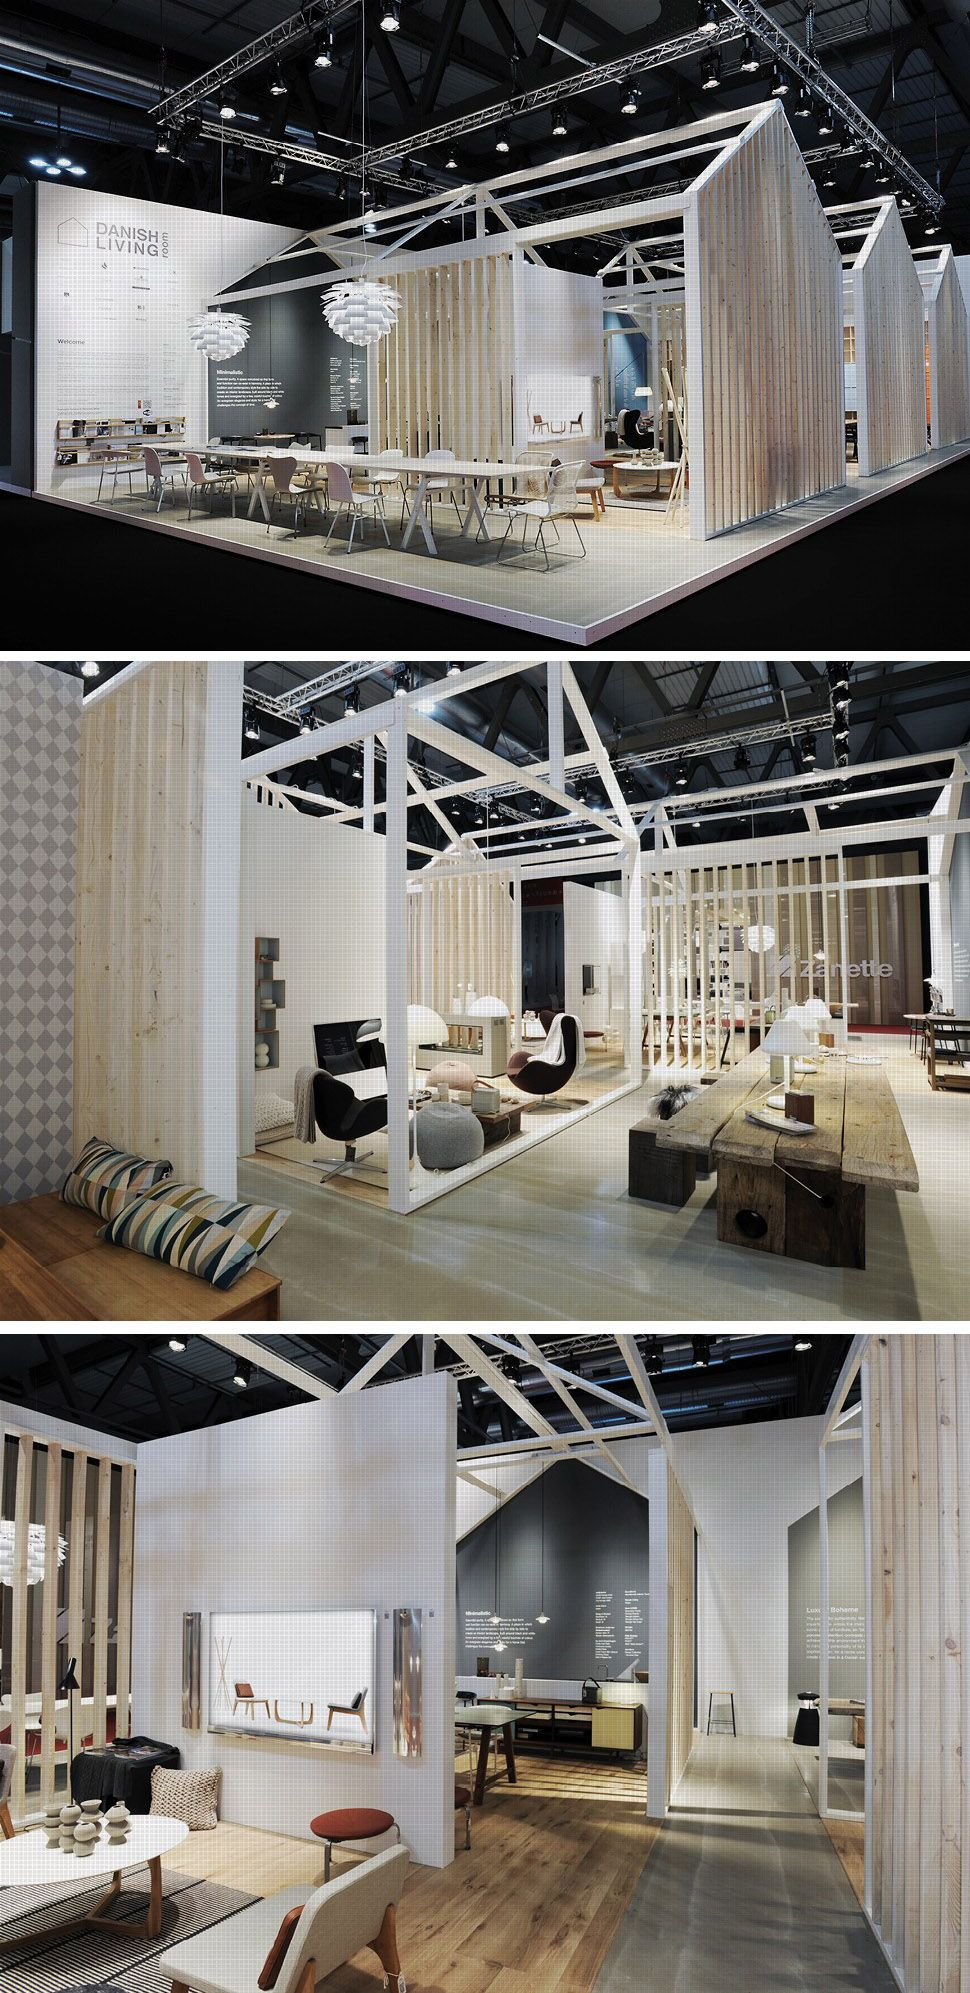 Danish living at salone del mobile 2011 stands for Arquitectura y diseno stands 8 pdf